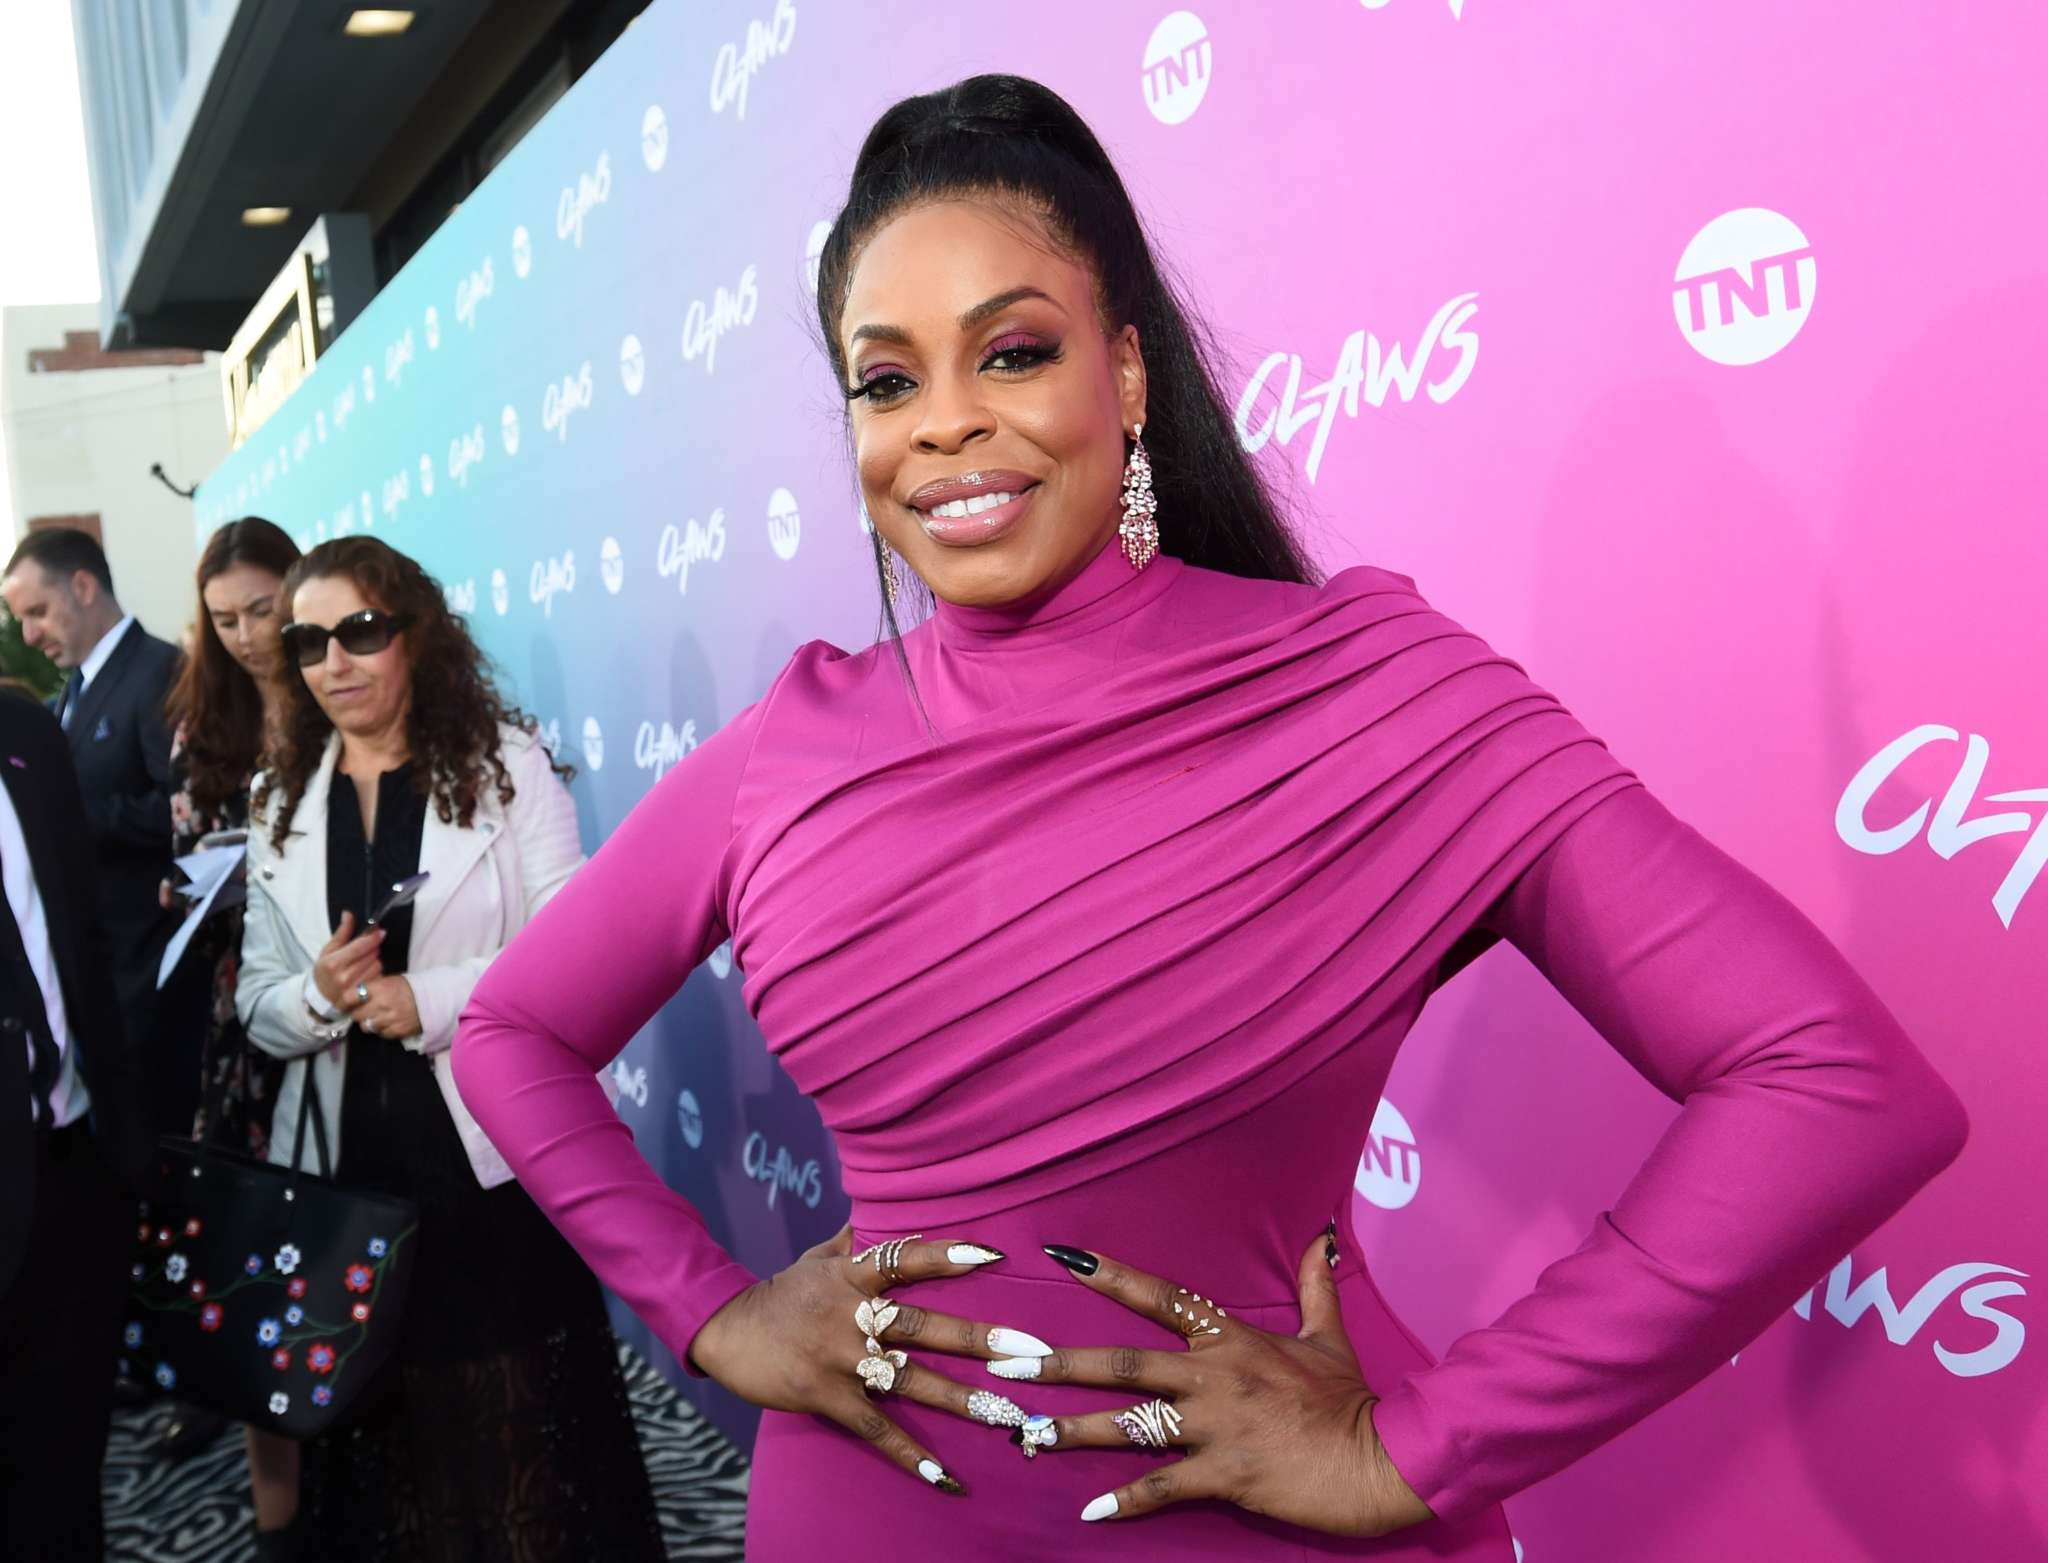 Niecy Nash Talks About Falling In Love With Her Wife And Only Seeing Her 'Soul'